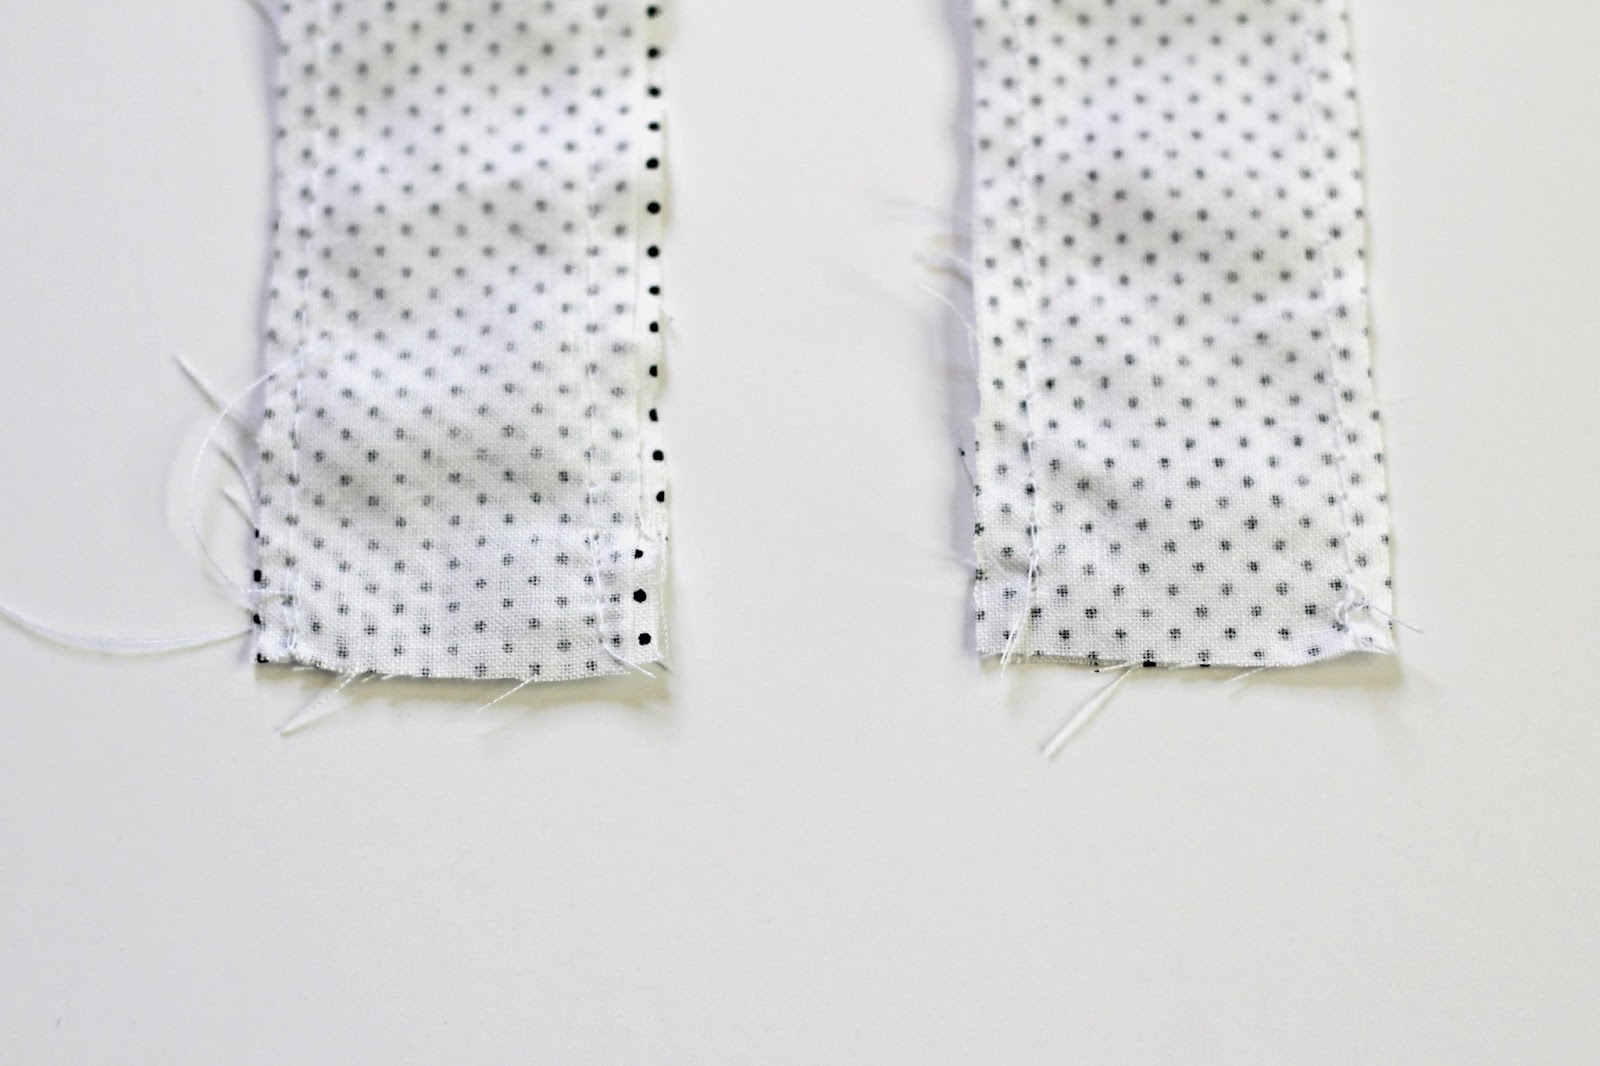 Cotton fabric for bowtie DIY